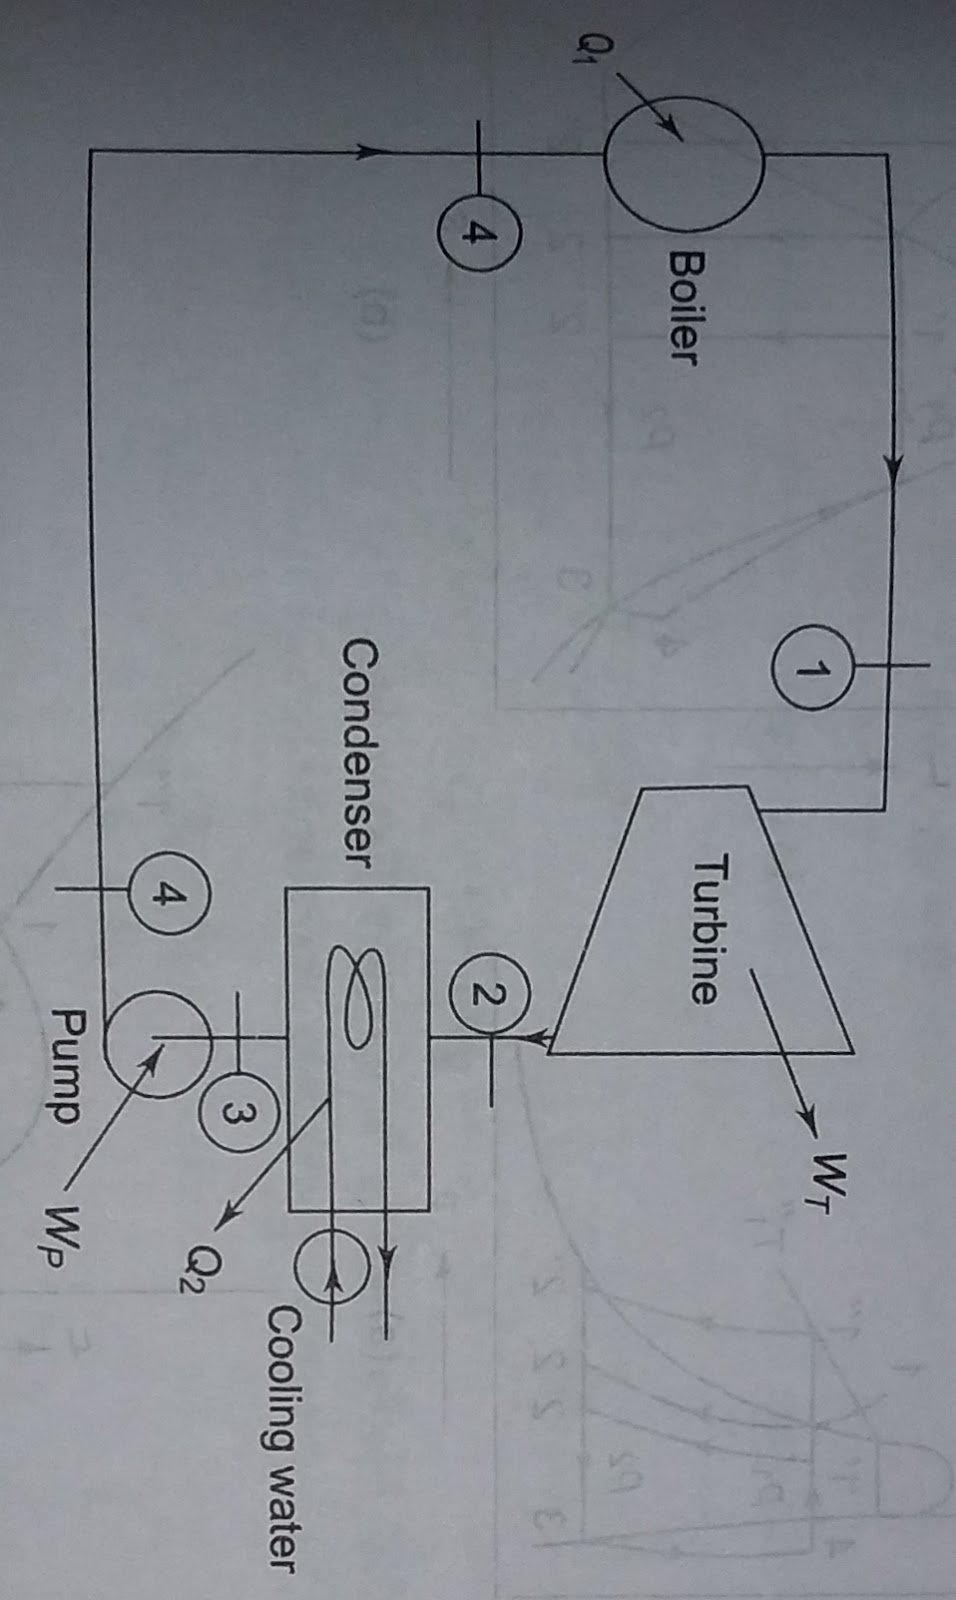 Engineering Thermodynamics Rankle Cycle Diagram And Equiations Rankine This Is A Reversible Figure 11 Showes The Flow Of